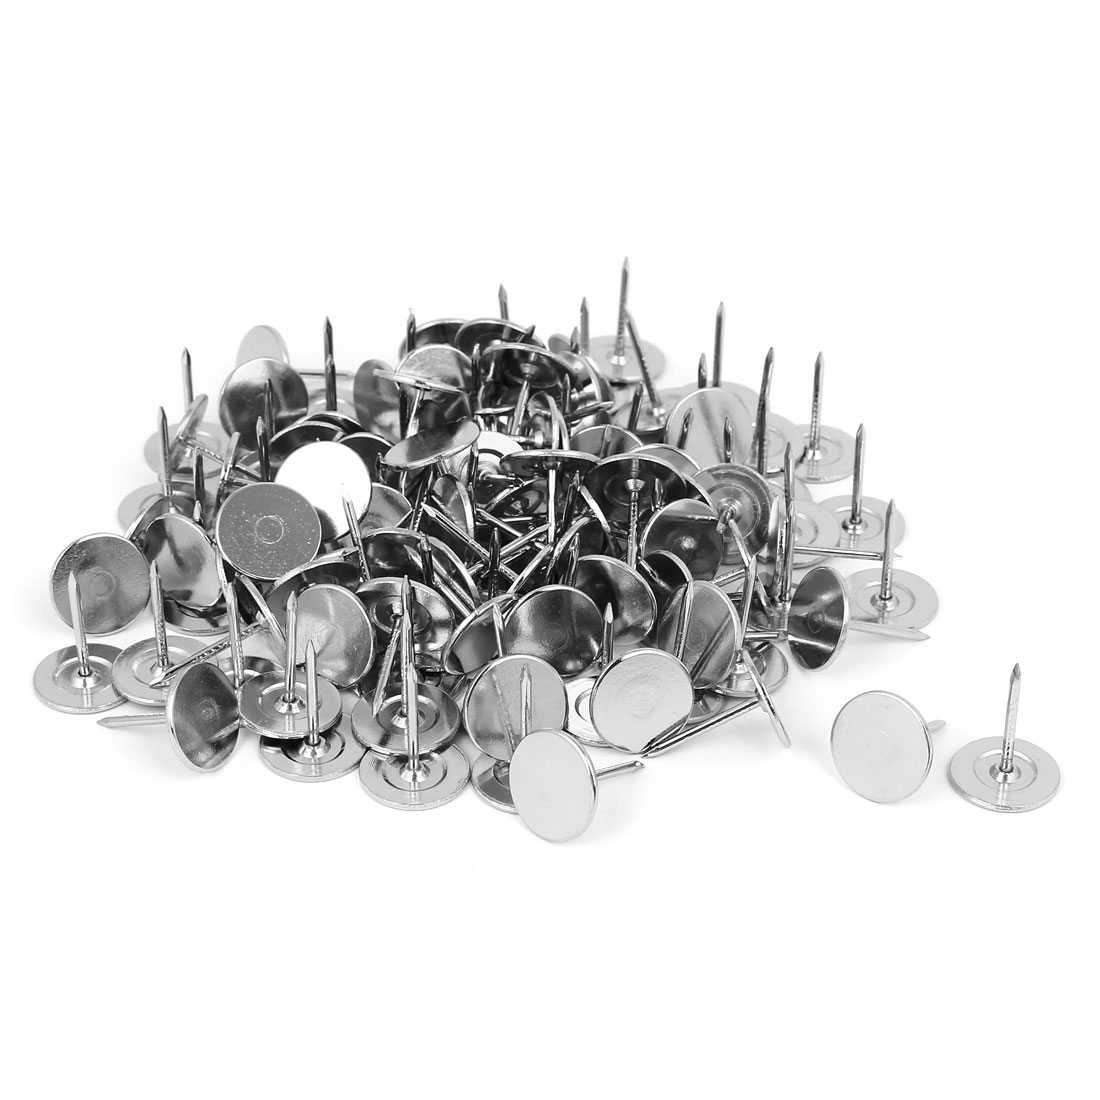 Furniture Metal Round Flat Head Upholstery Tack Nail Silver Tone 15mm Dia 120pcs